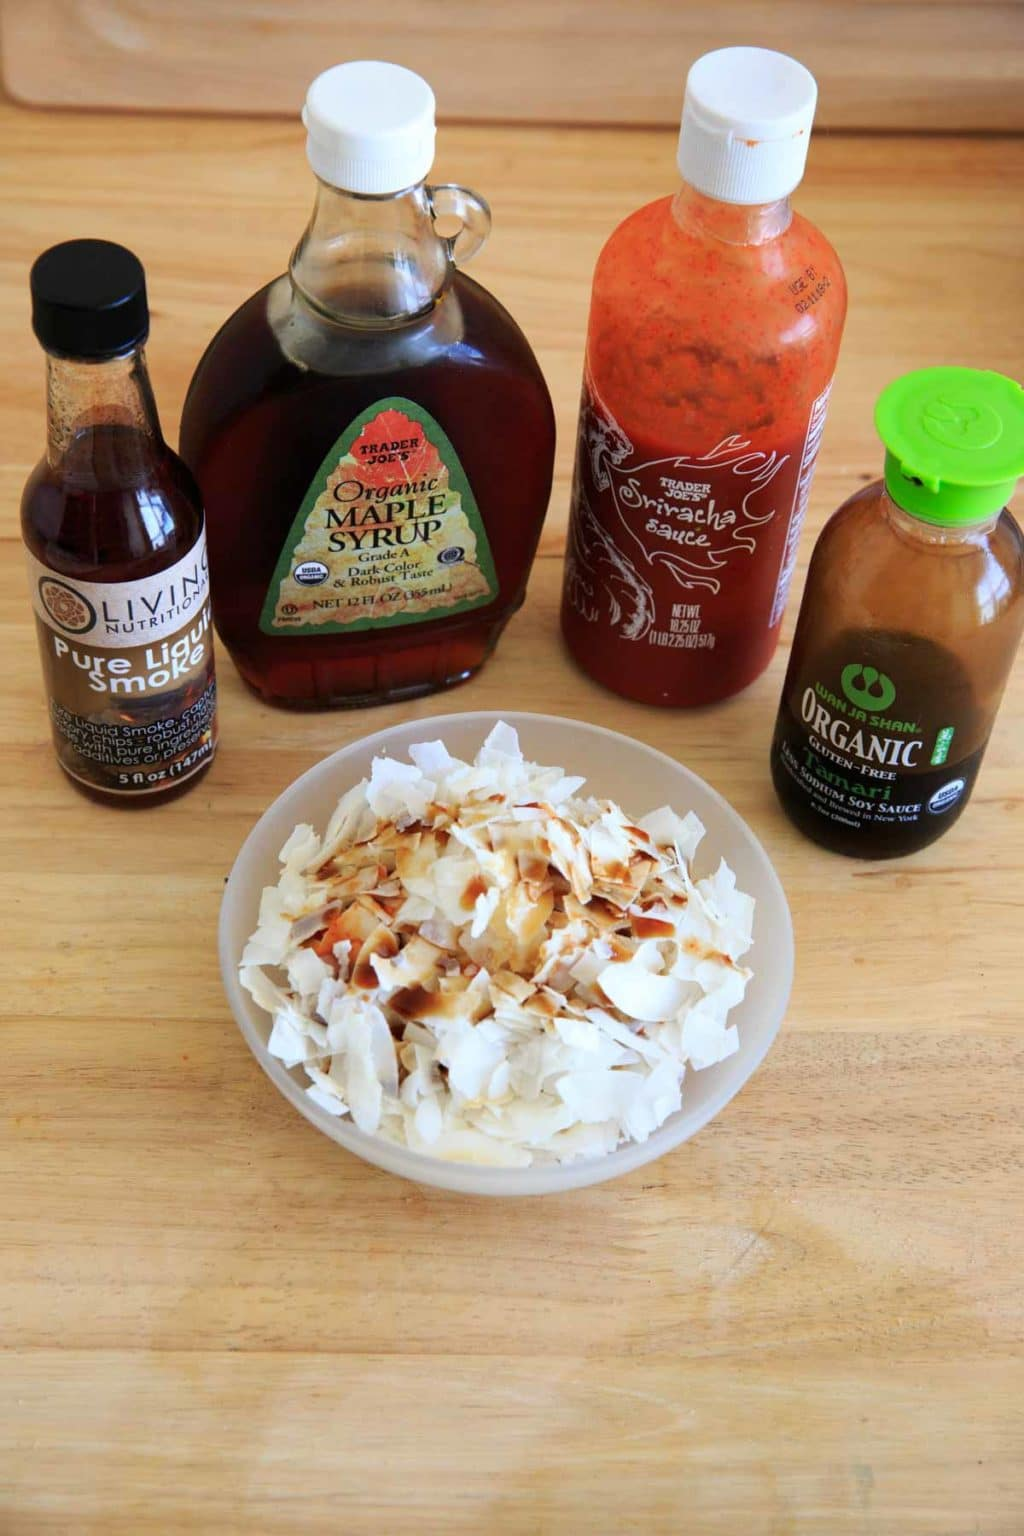 Coconut Chips with soy sauce or tamari, maple syrup, liquid smoke and a touch of sriracha. Before mixing